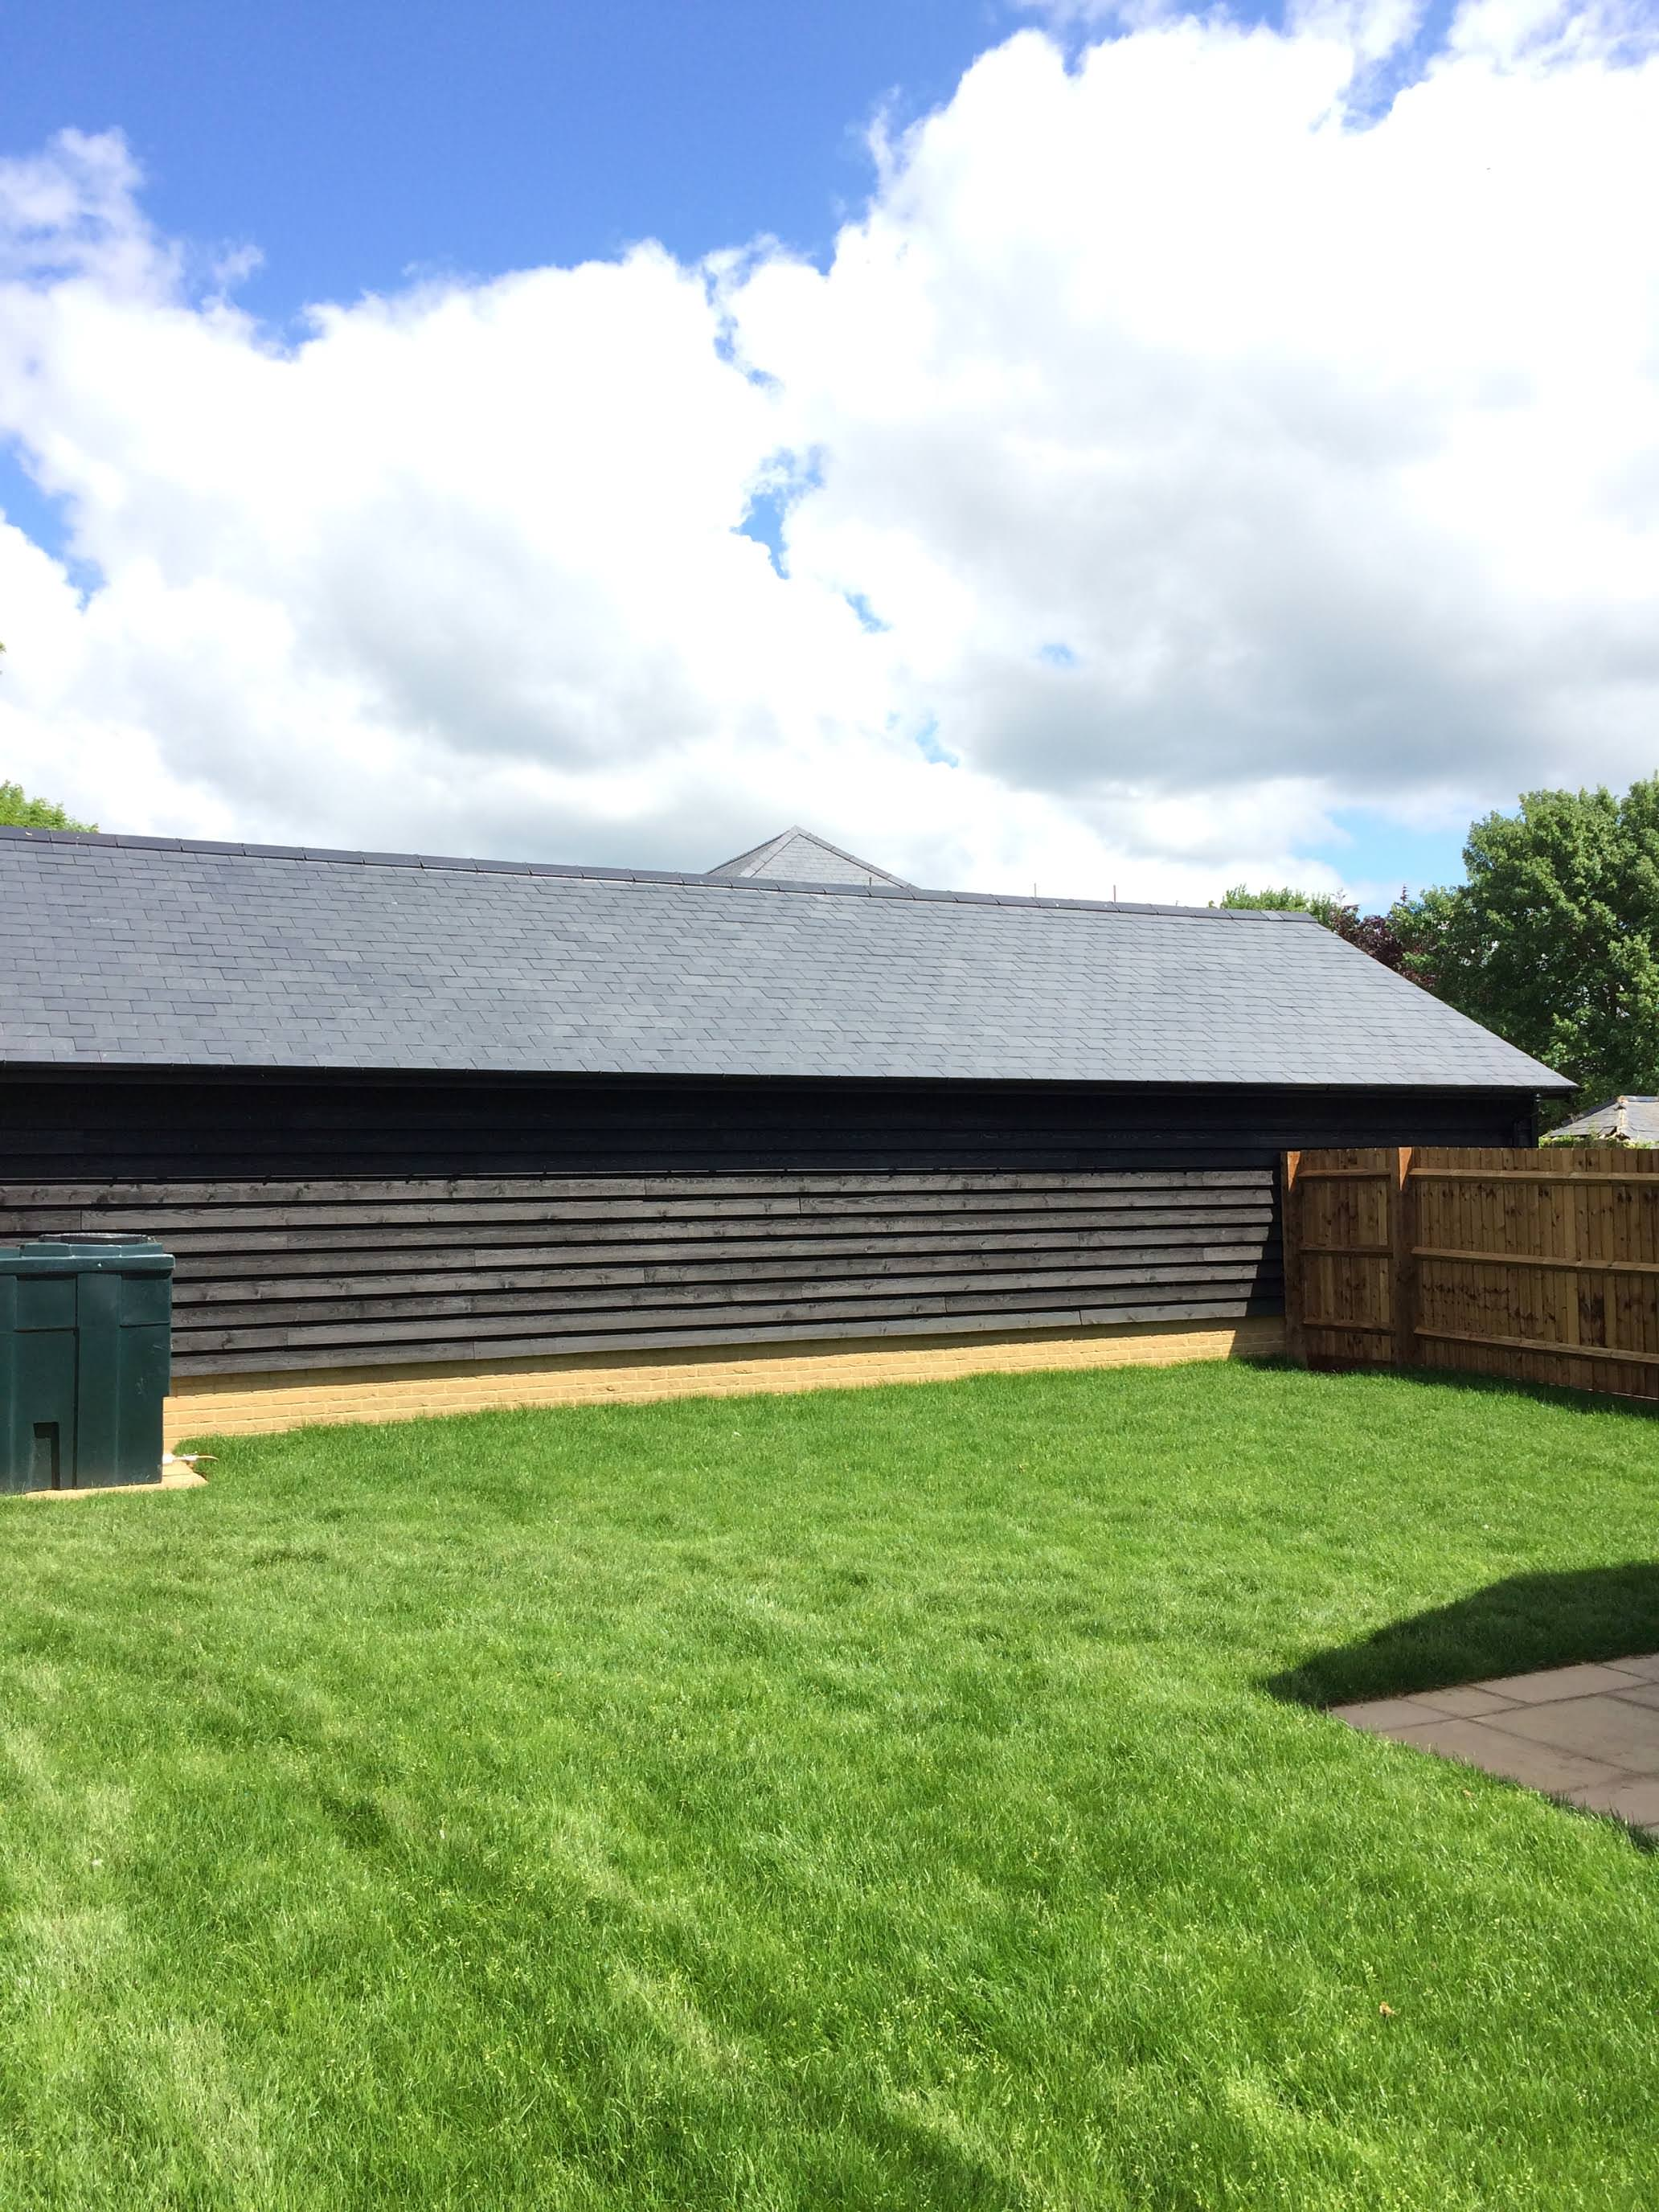 an image of The Wrestlingworth Guttering Project, showing the side of the extension and the work completed by AJ Scutchings and Son